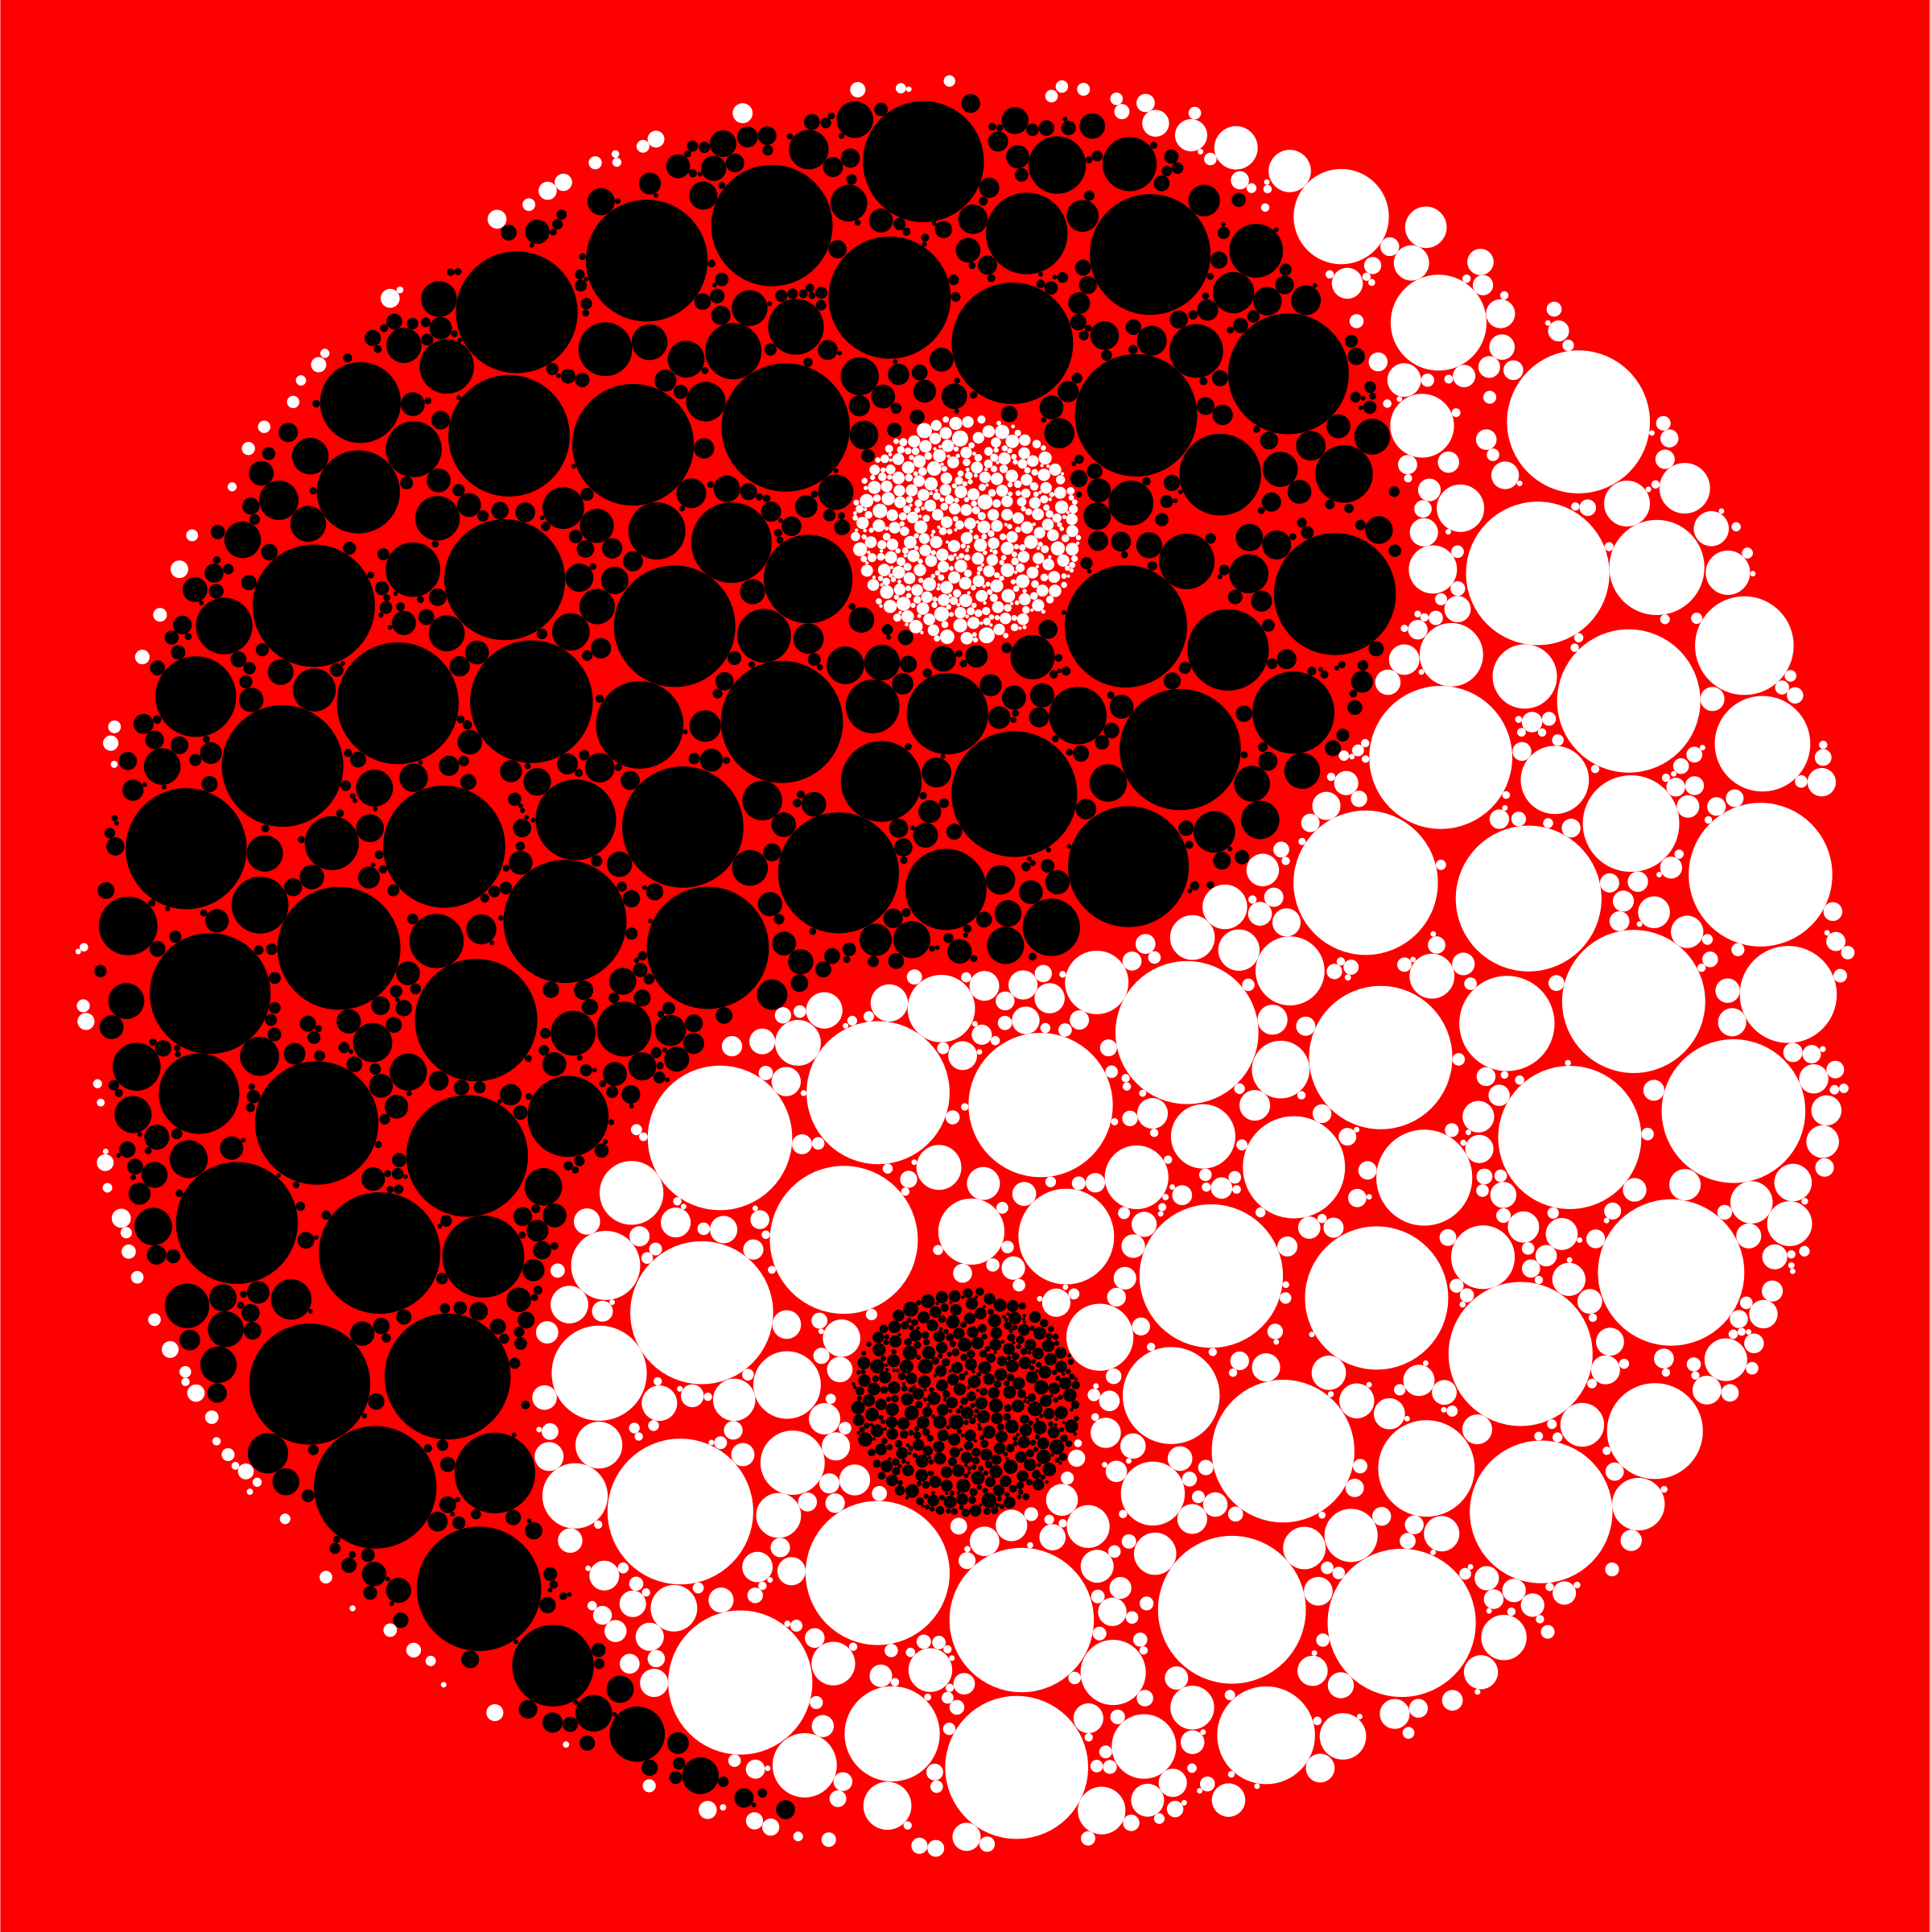 Circles Yin Yang With Background by GDJ